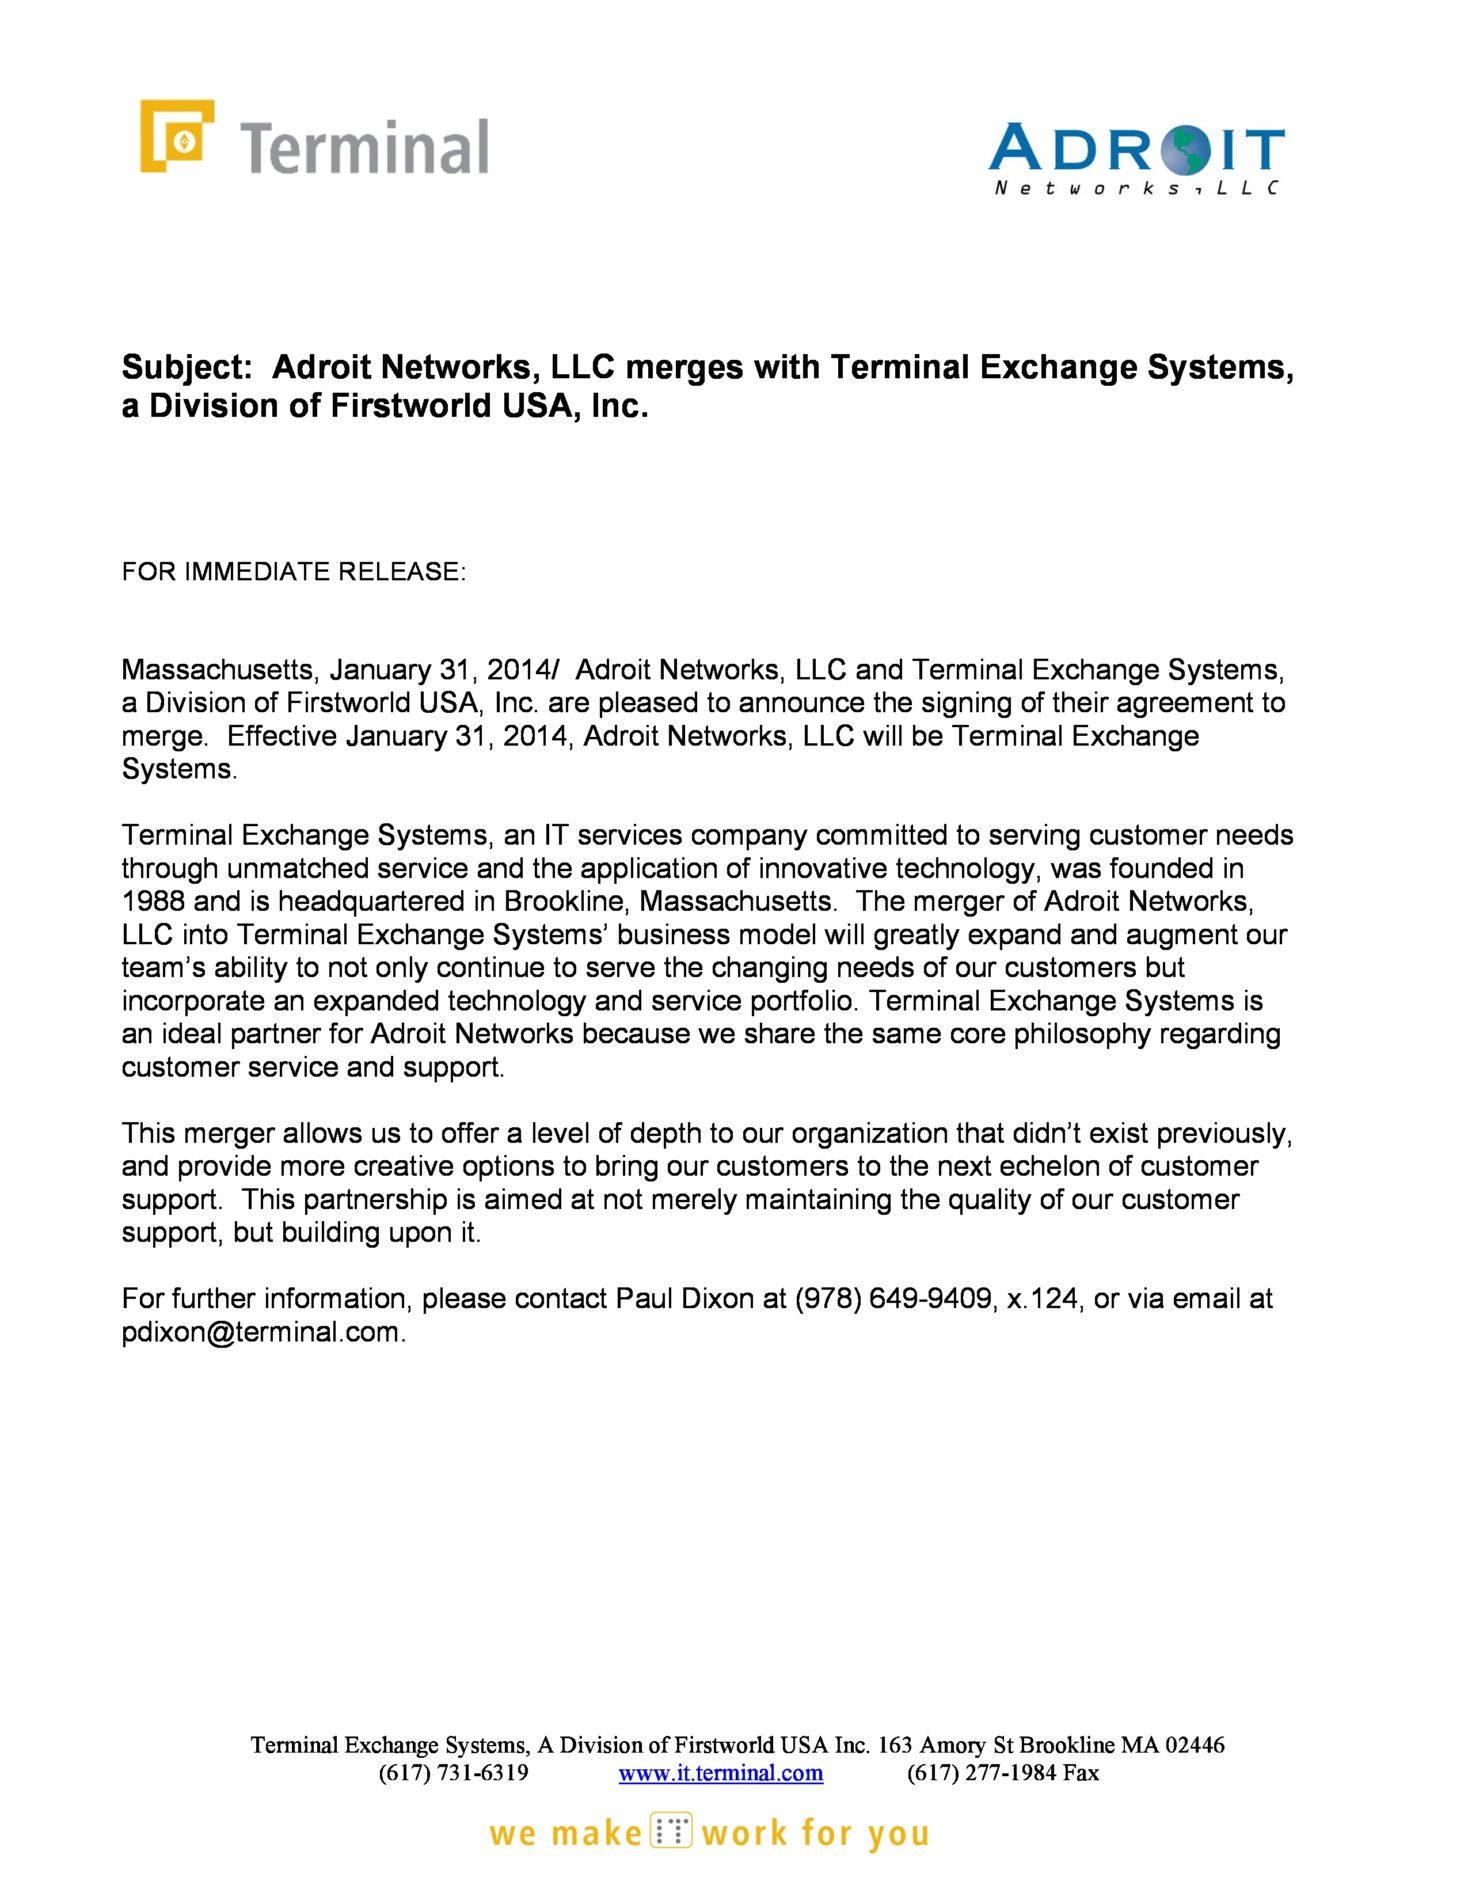 Androit Networks LLC Merges With Terminal Exchange